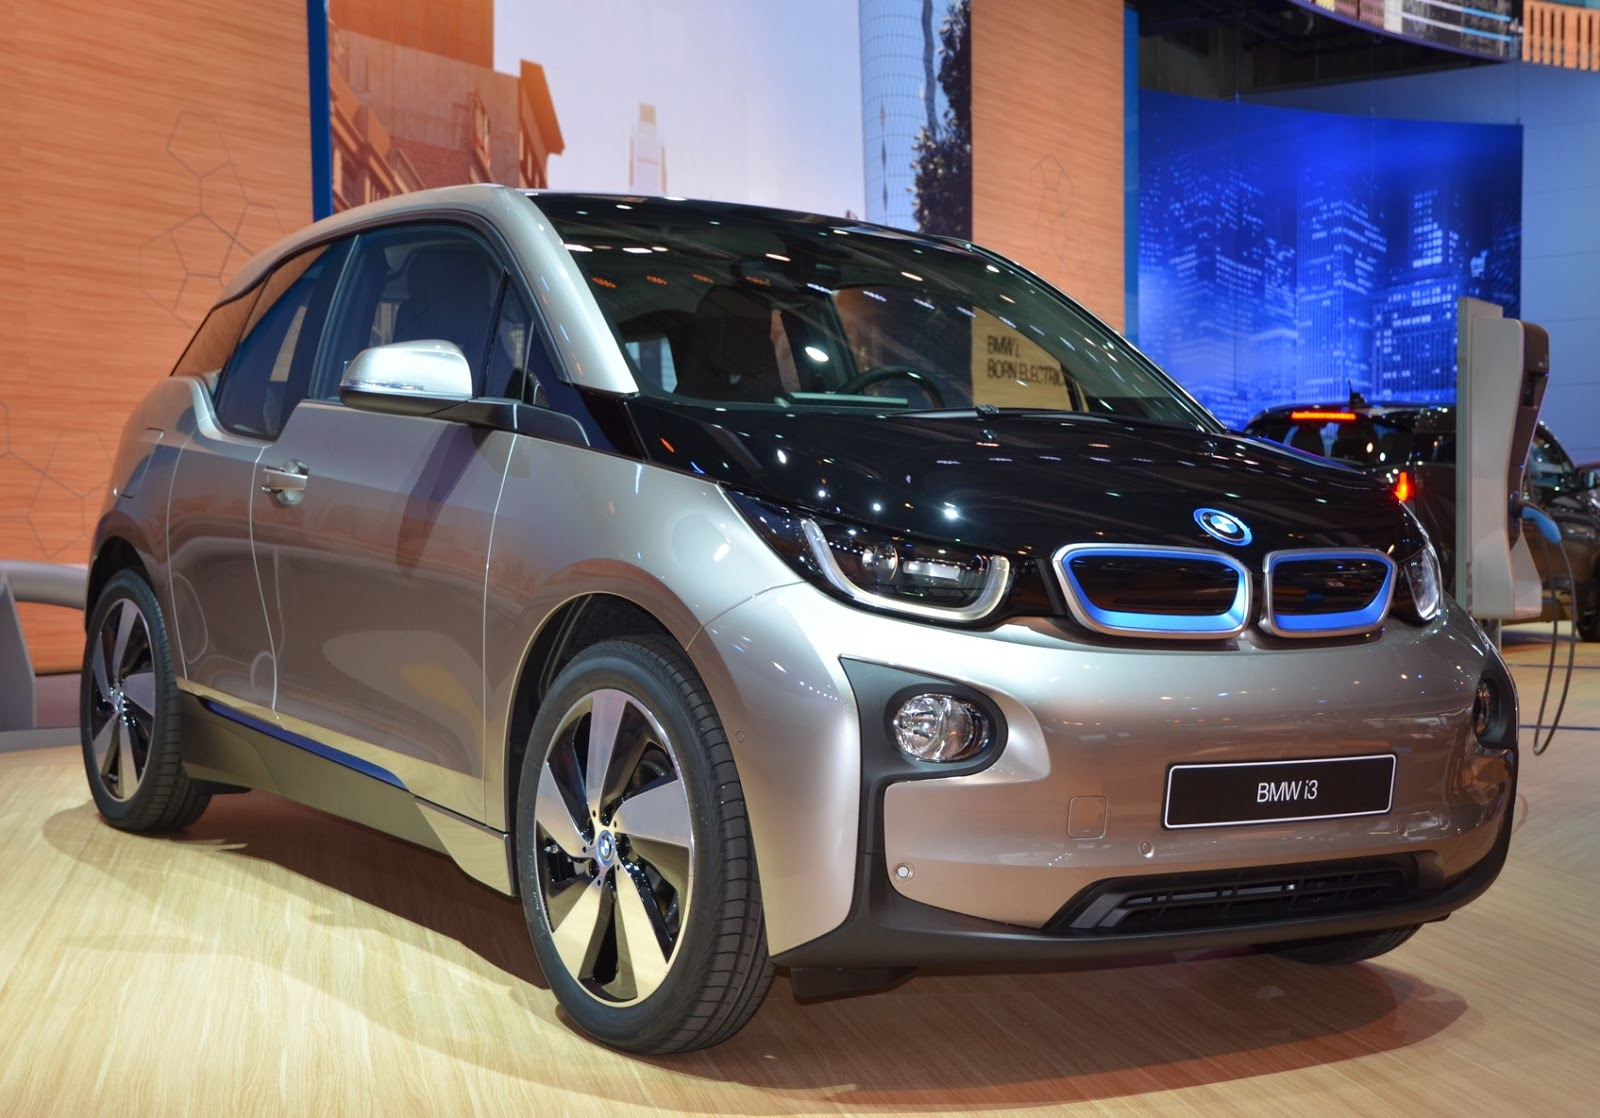 The Electric Bmw I3 Bmw I3 I See Your True Colors